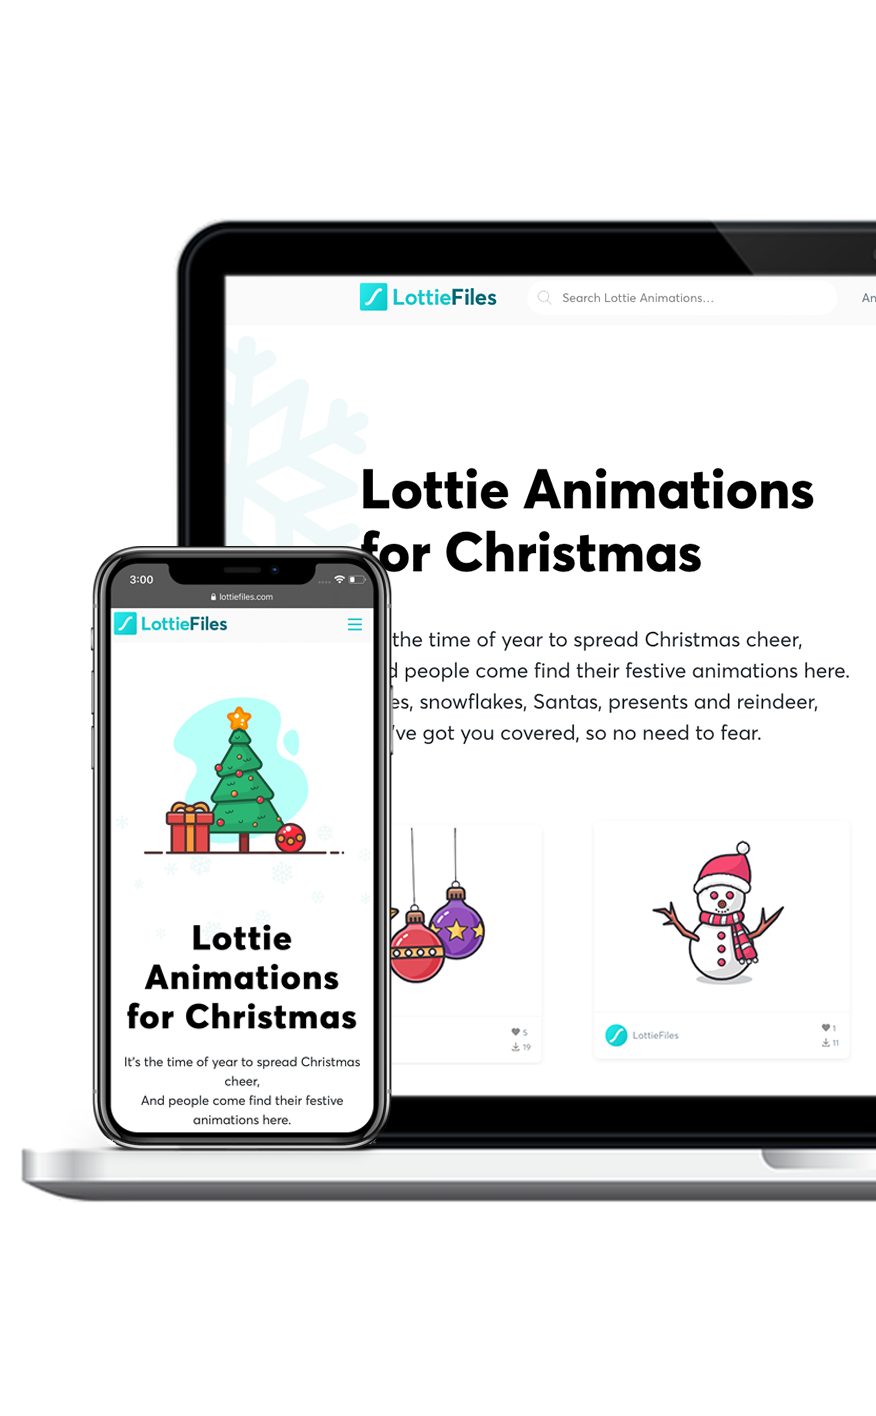 How to make your app and website stand out this Christmas